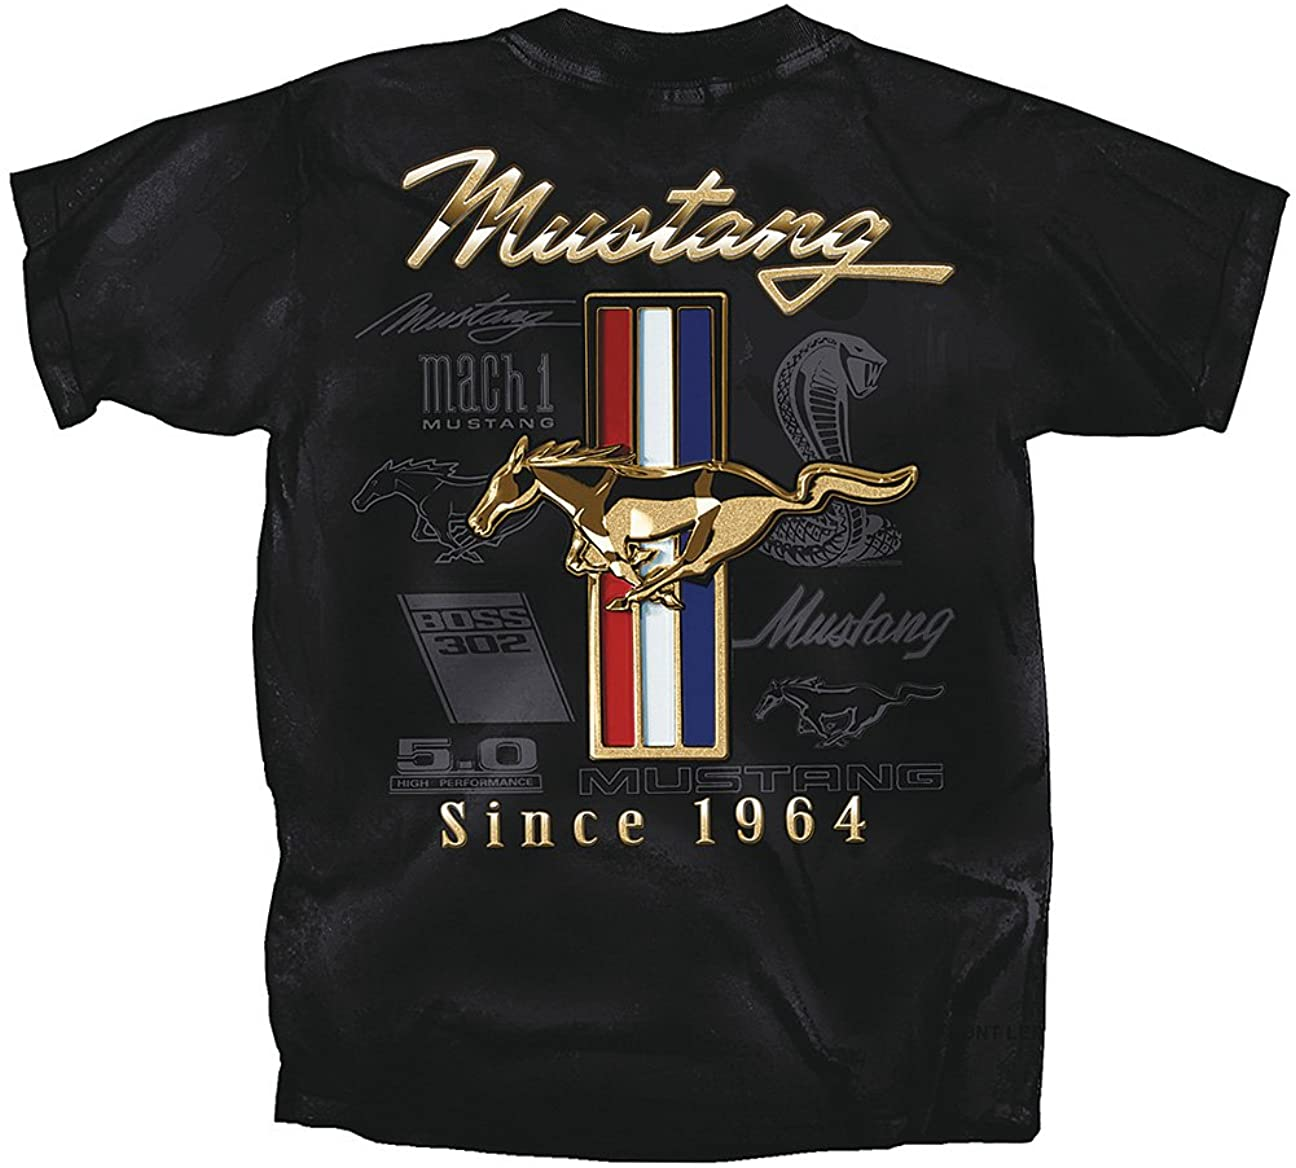 Ford Mustang Golden Tribar T-Shirt with 5.0, Boss, Tribal Pony Emblems